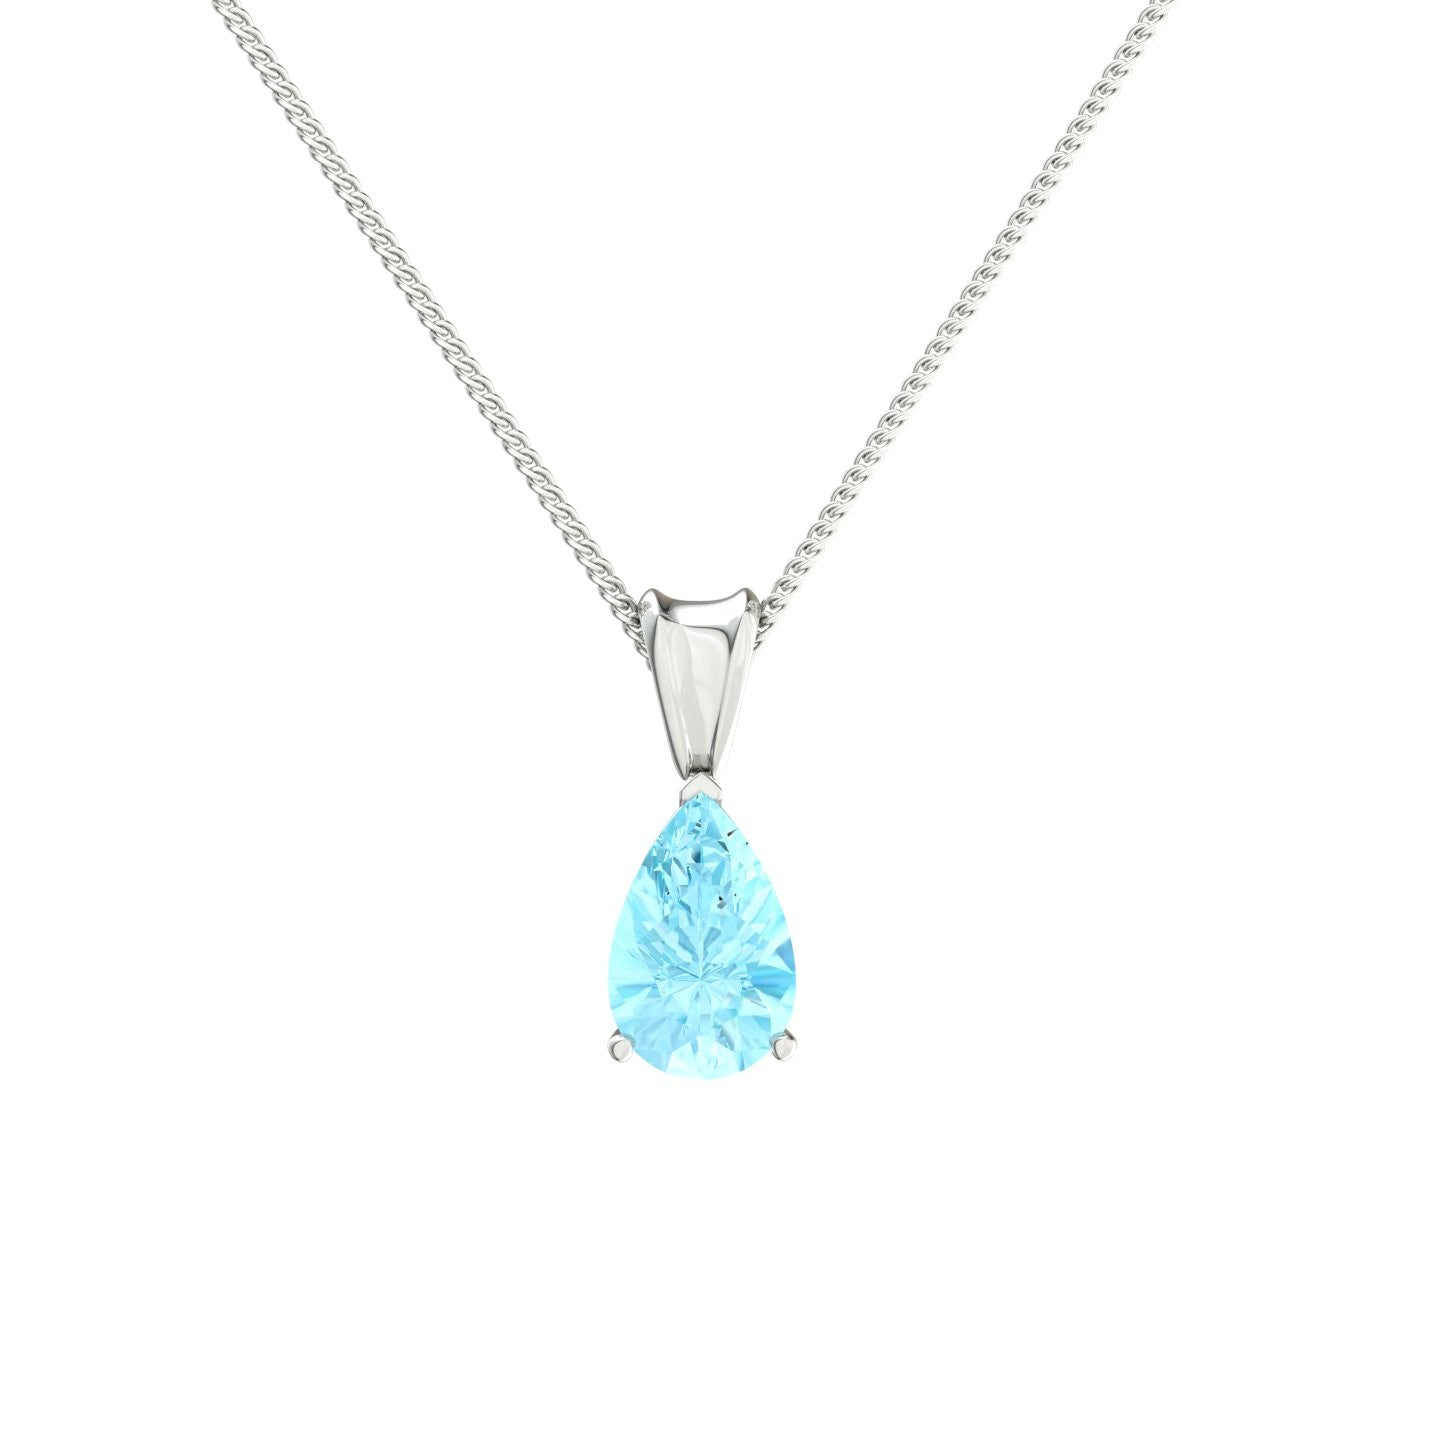 star white kite color htm pendant a shaped is diamond pendants purchasing ct invisible shape gold cut setting what h an